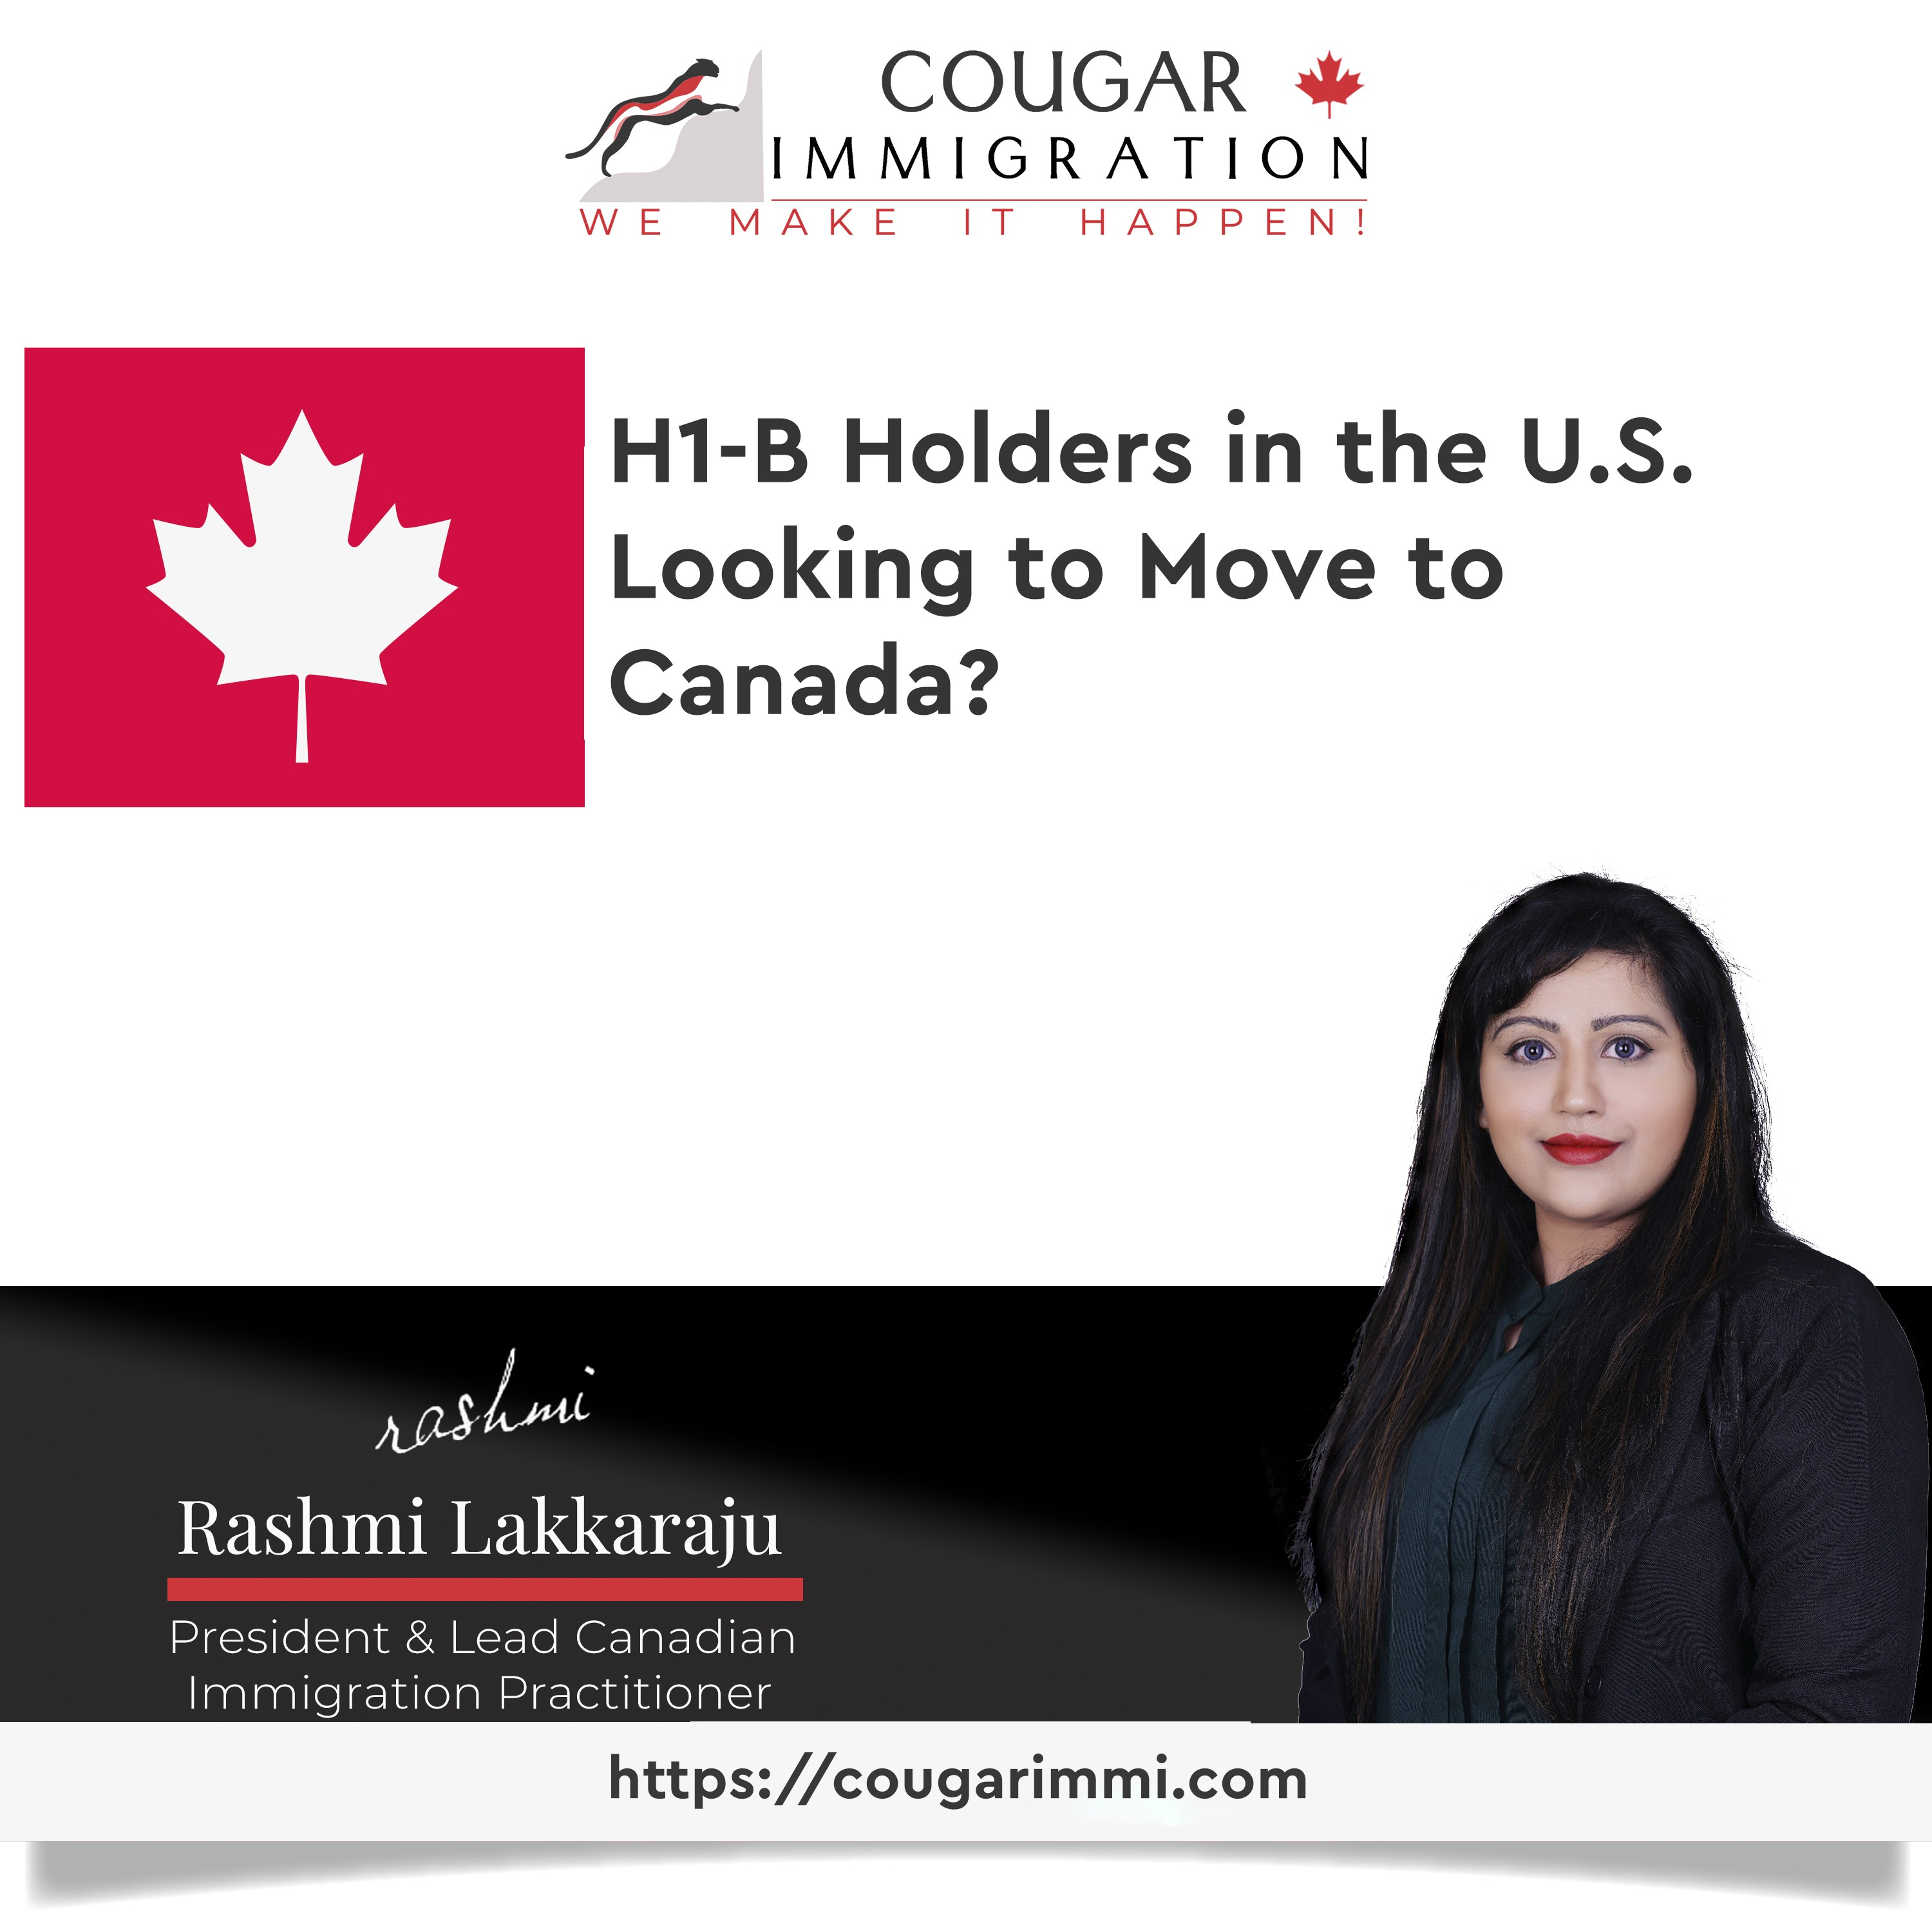 H1-B Holders in the U.S. Looking to Move to Canada? thumbnail